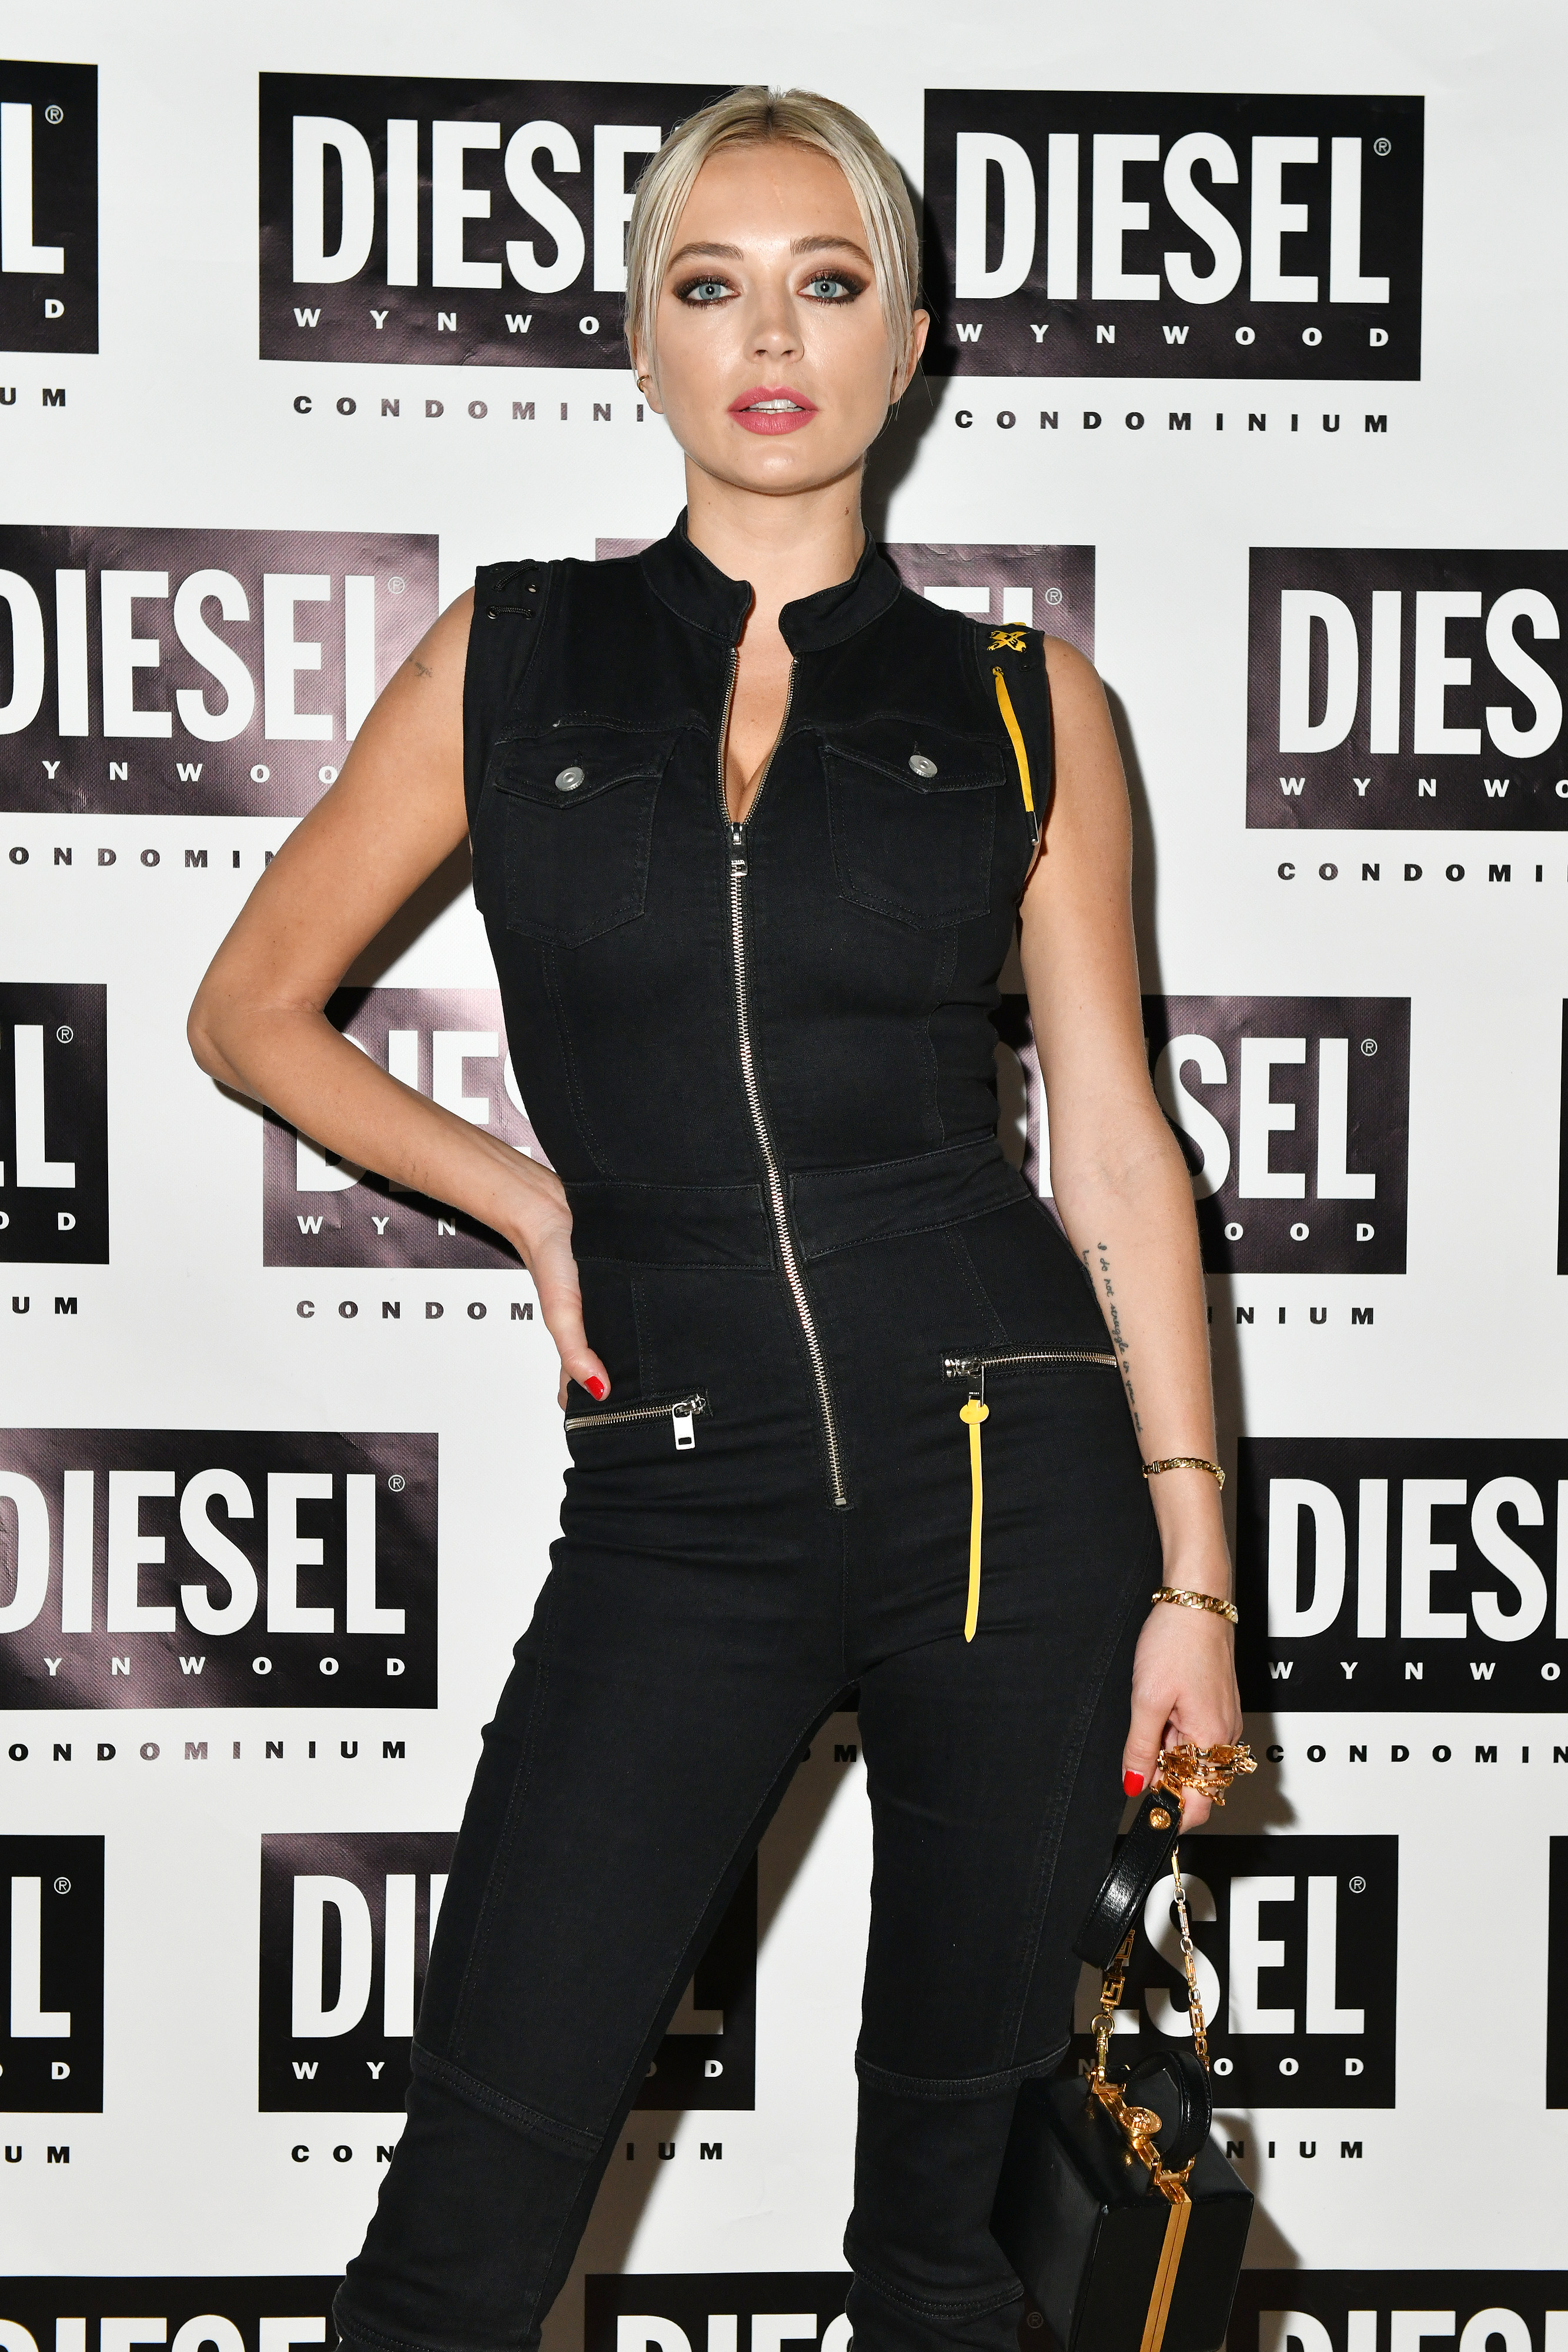 MIAMI, FLORIDA - DECEMBER 04: Caroline Vreeland attends as DIESEL celebrates the exclusive launch of DIESEL Wynwood 28, their first residential building, with a DJ set by Amrit at Barter on December 04, 2019 in Miami, Florida. (Photo by Craig Barritt/Getty Images for Diesel)